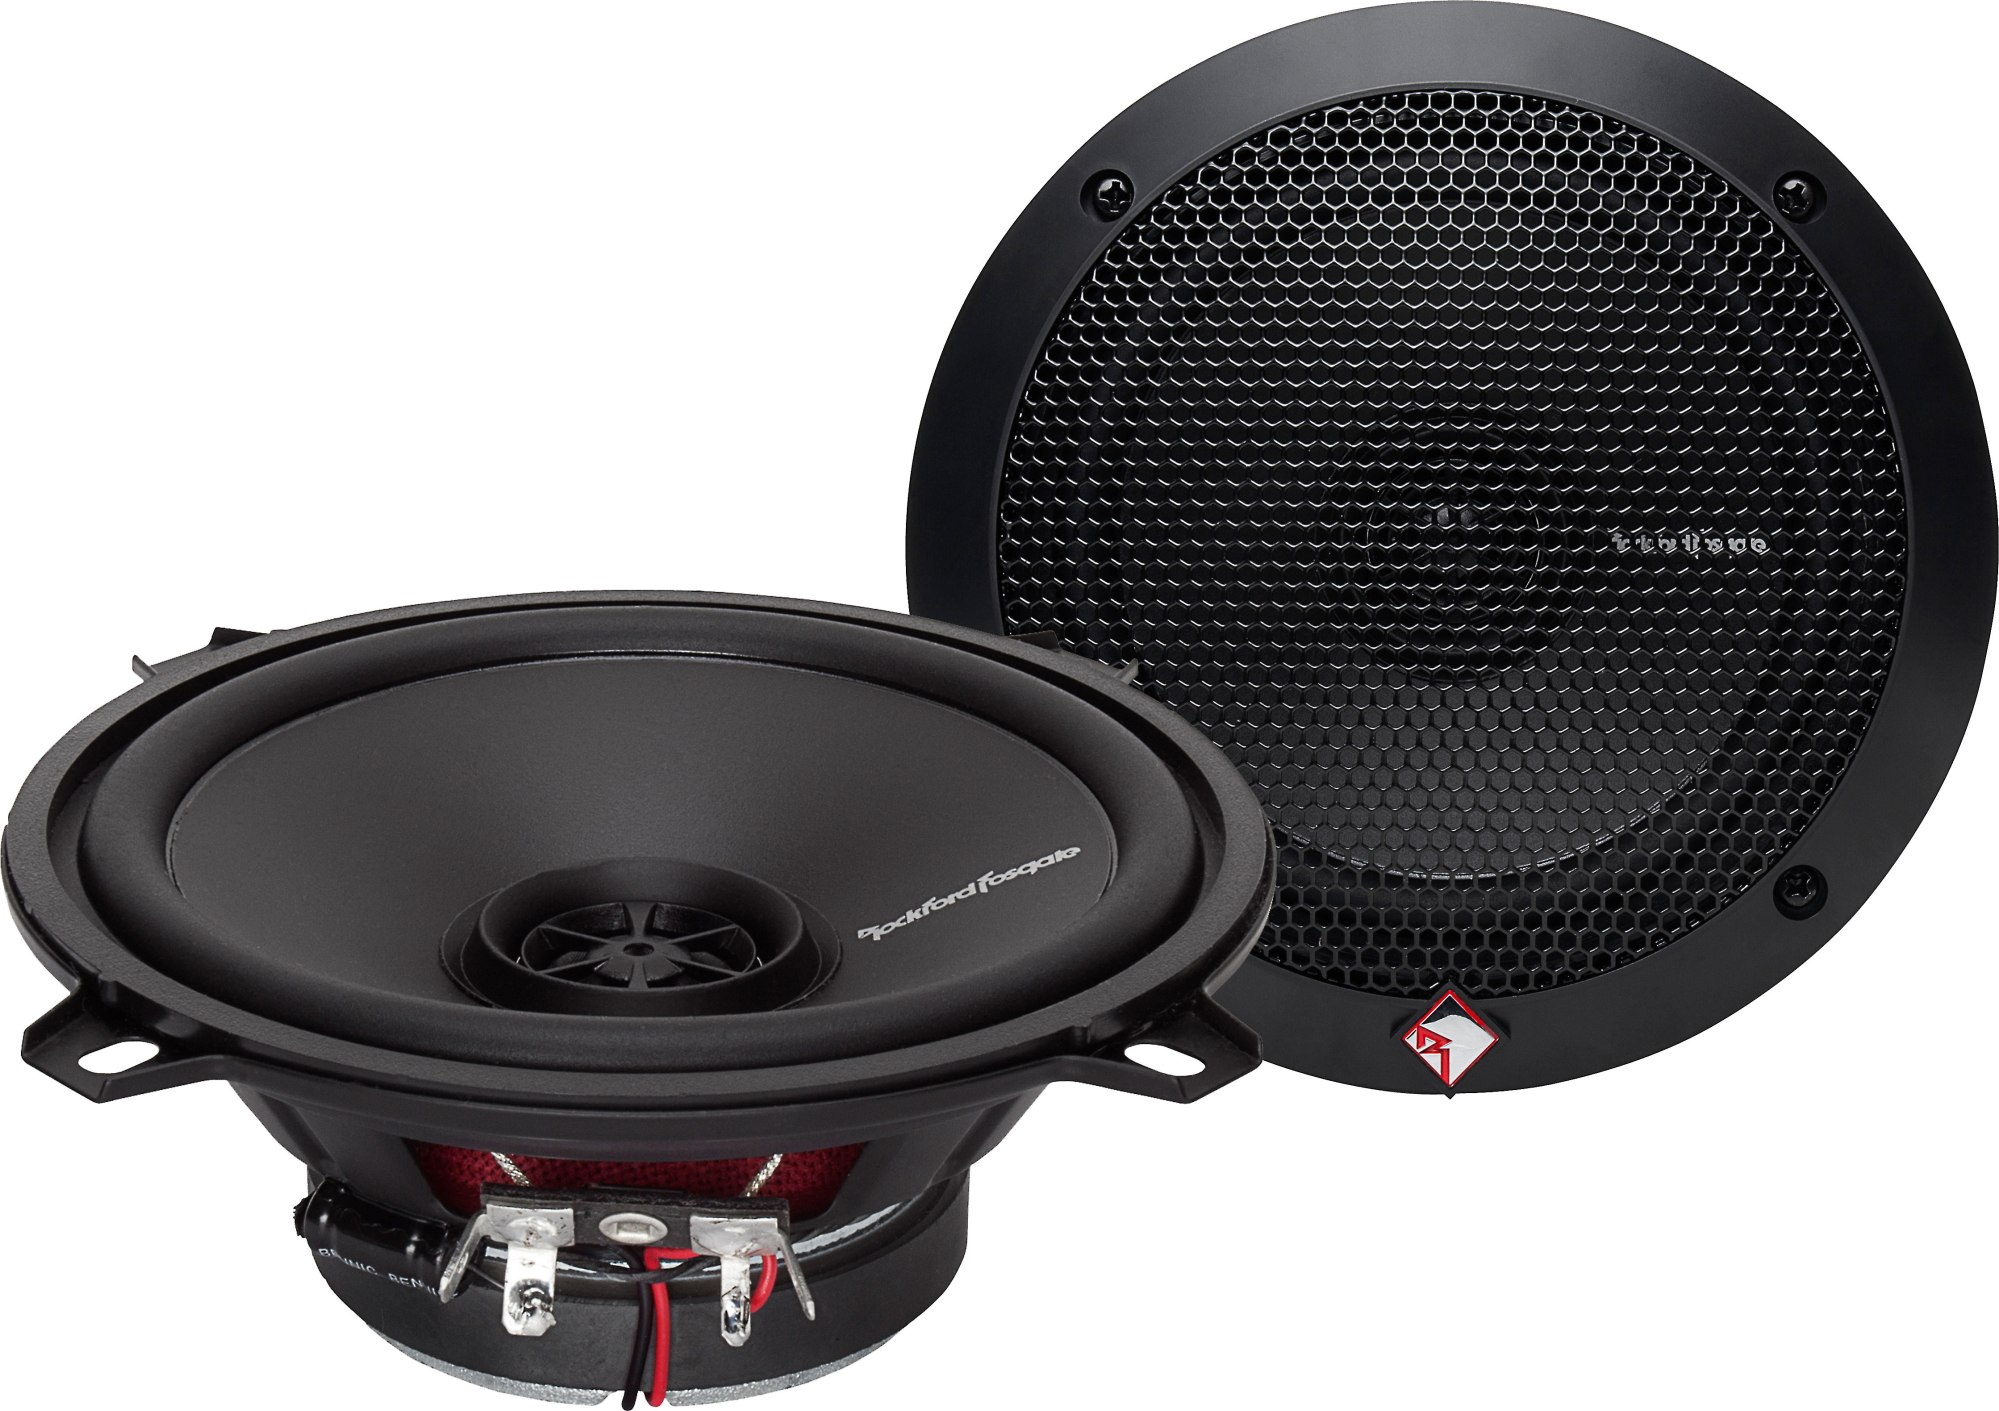 hight resolution of rockford fosgate r1525x2 prime series 5 1 4 2 way car speakers at crutchfield